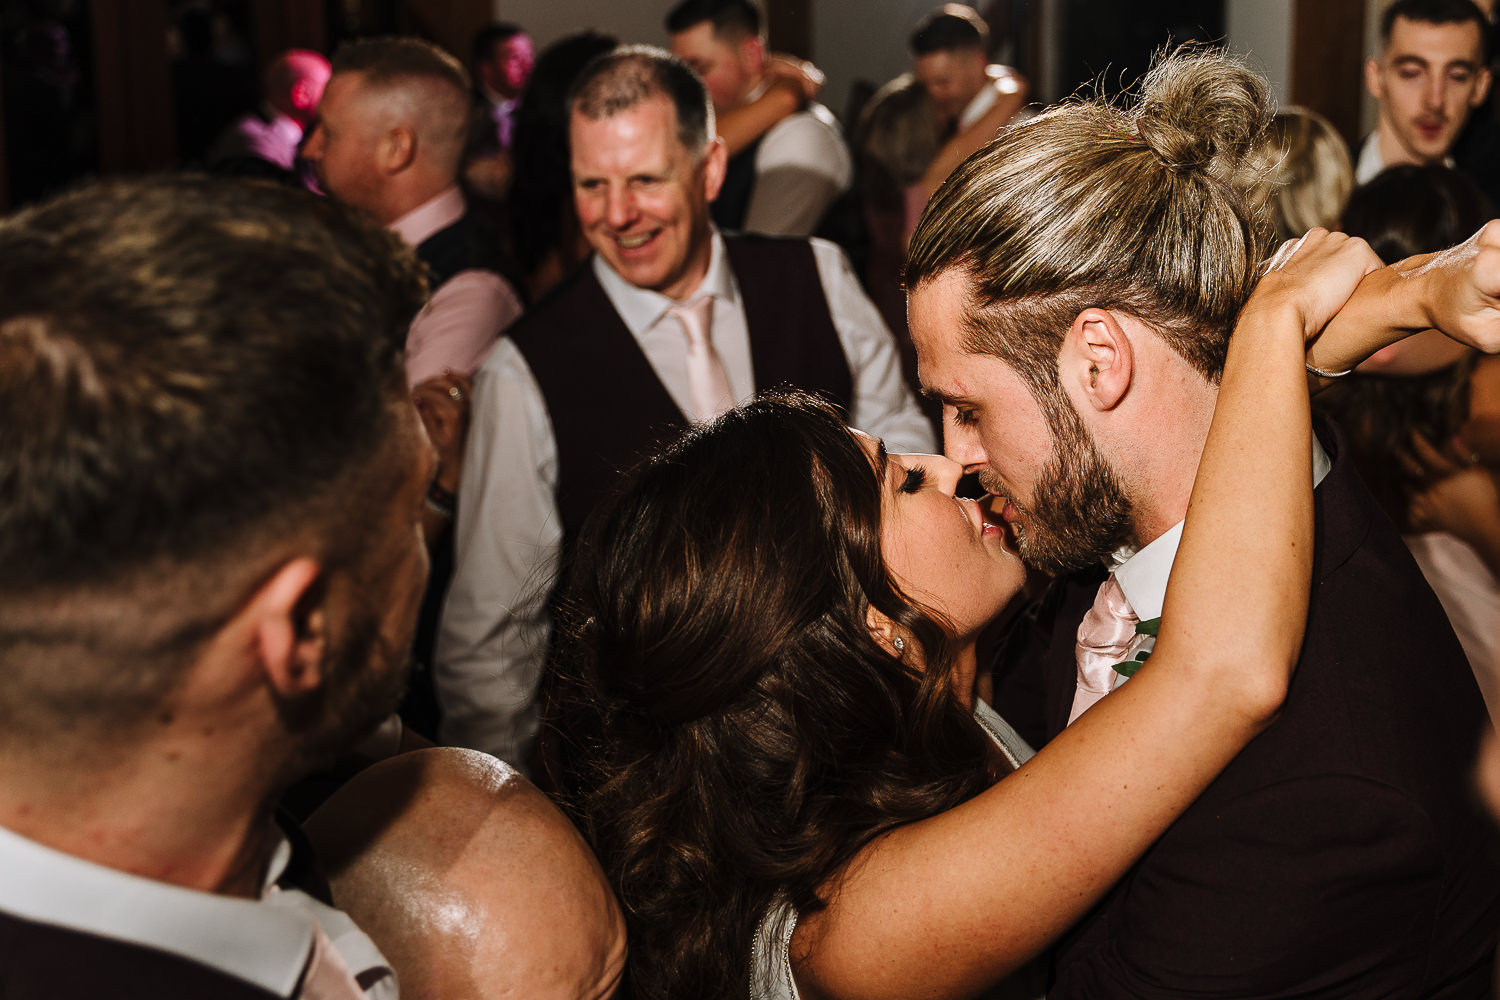 Bride and groom kissing on a packed dance floor